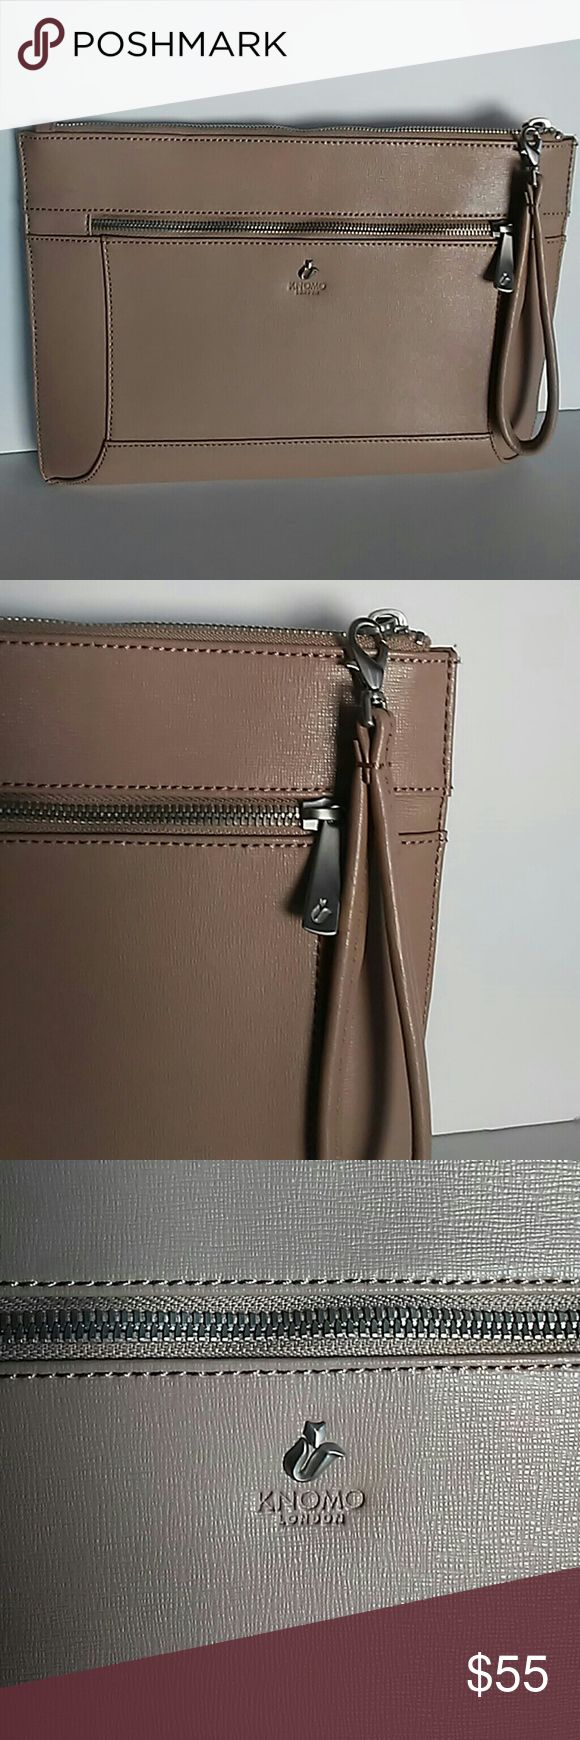 New Knomo London Harley iPad Tablet Leather Clutch Knomo London Harley iPad Air Tablet Leather Clutch Handbag Pouch Case Ivory. Material: Leather. Can hold ipad/tablets up to 10 inch. Kinomo London Bags Laptop Bags